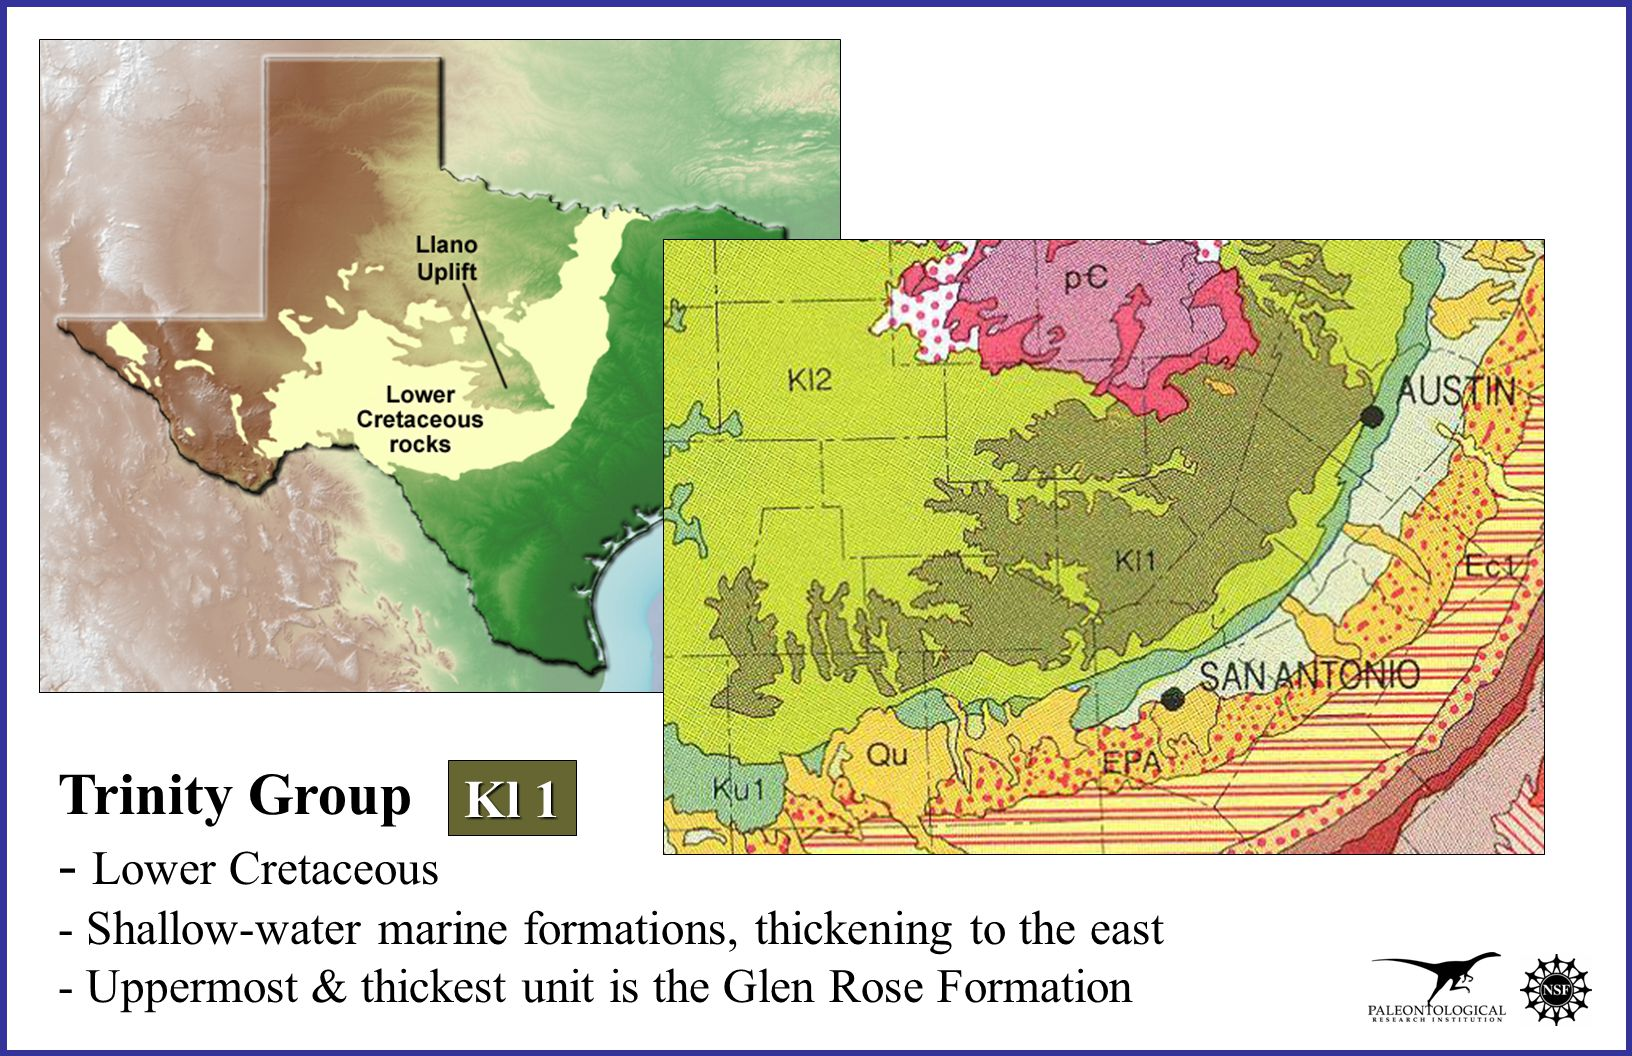 Trinity Group - Lower Cretaceous - Shallow-water marine formations, thickening to the east - Uppermost & thickest unit is the Glen Rose Formation Kl 1